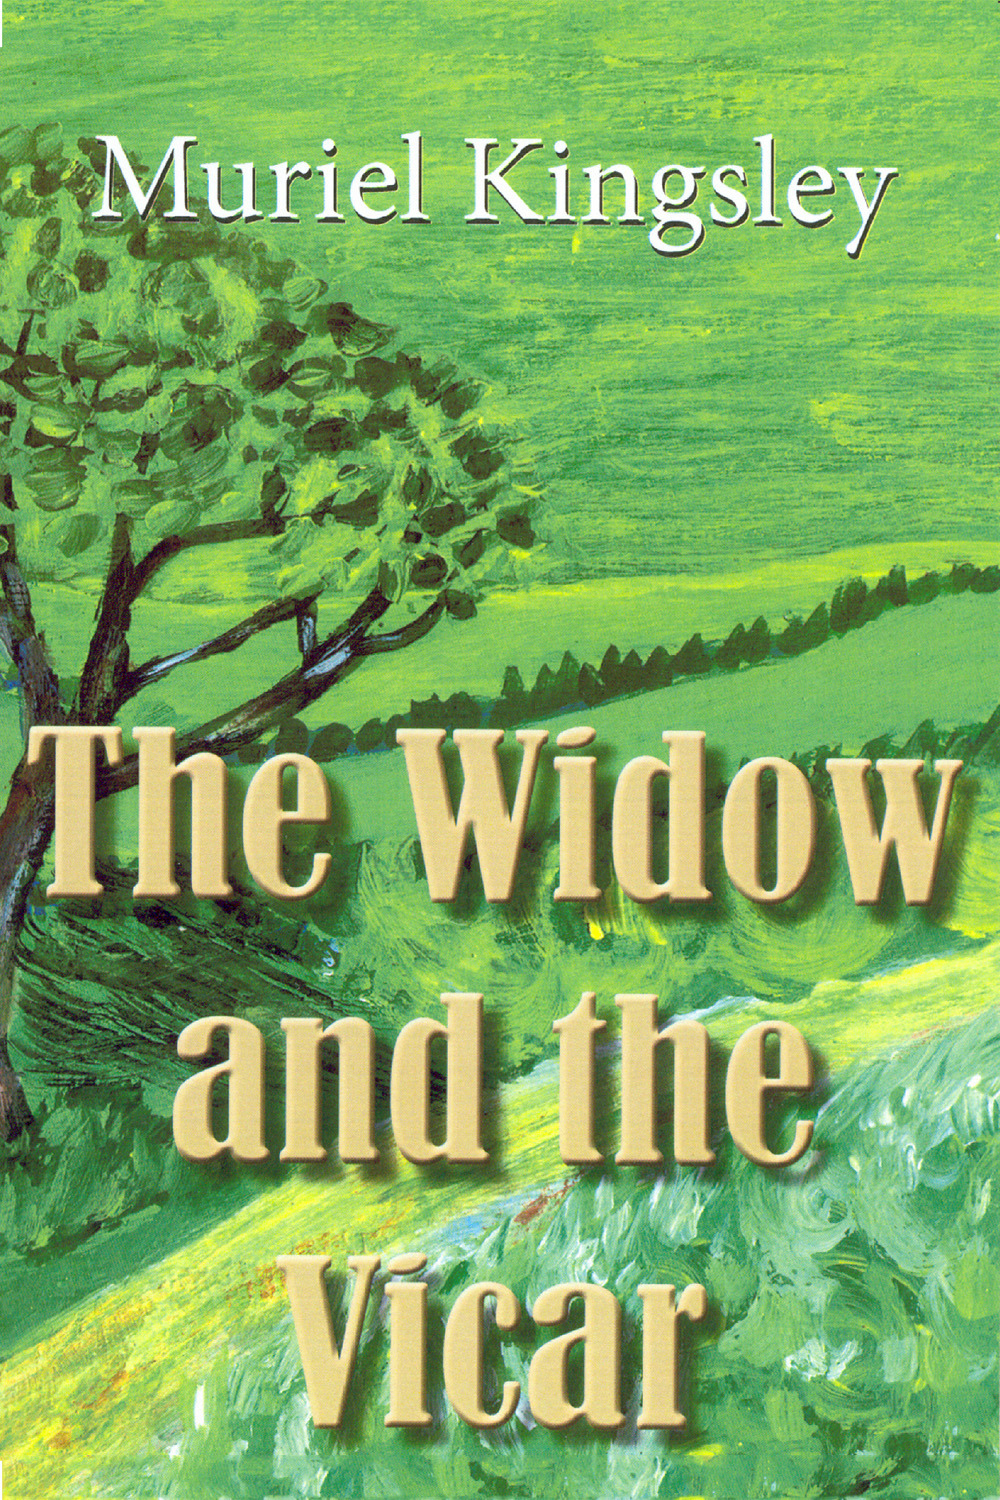 Kingsley, Muriel - The Widow and The Vicar, ebook